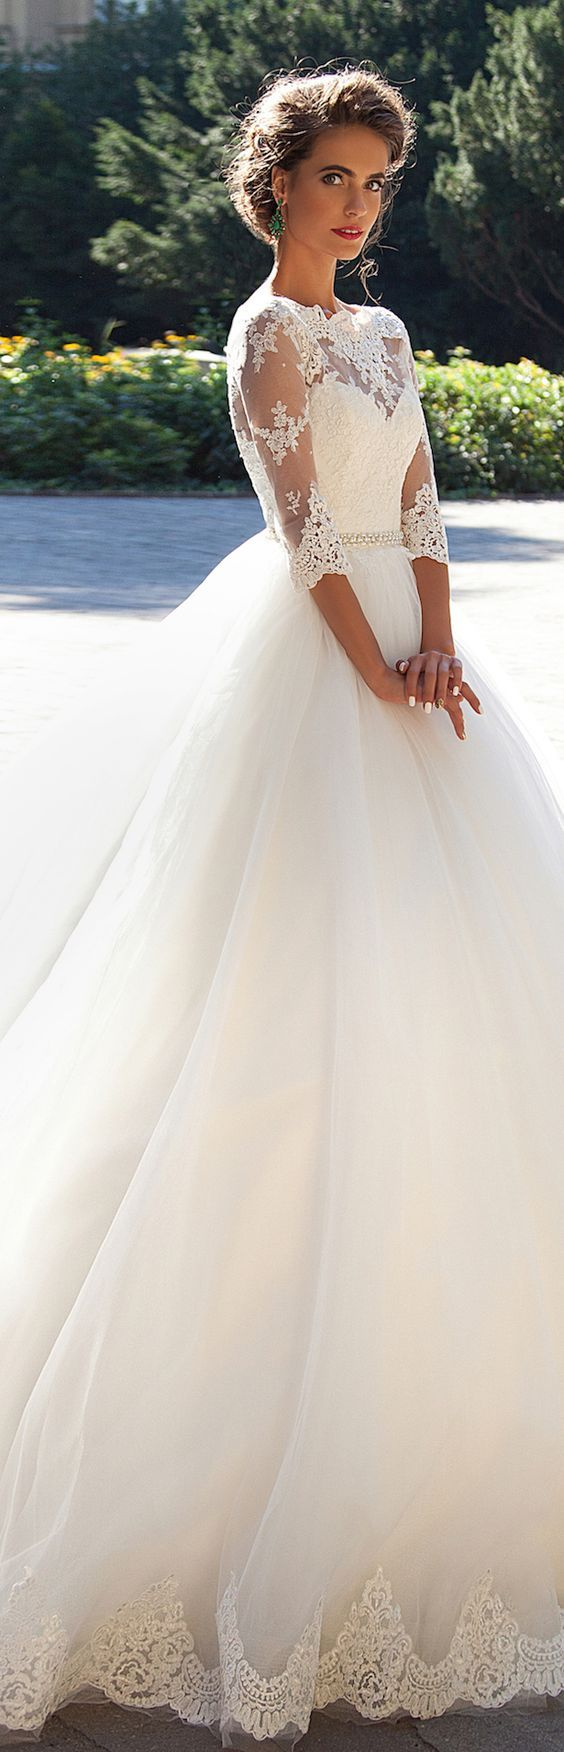 100 Stunning Long Sleeve Wedding Dresses